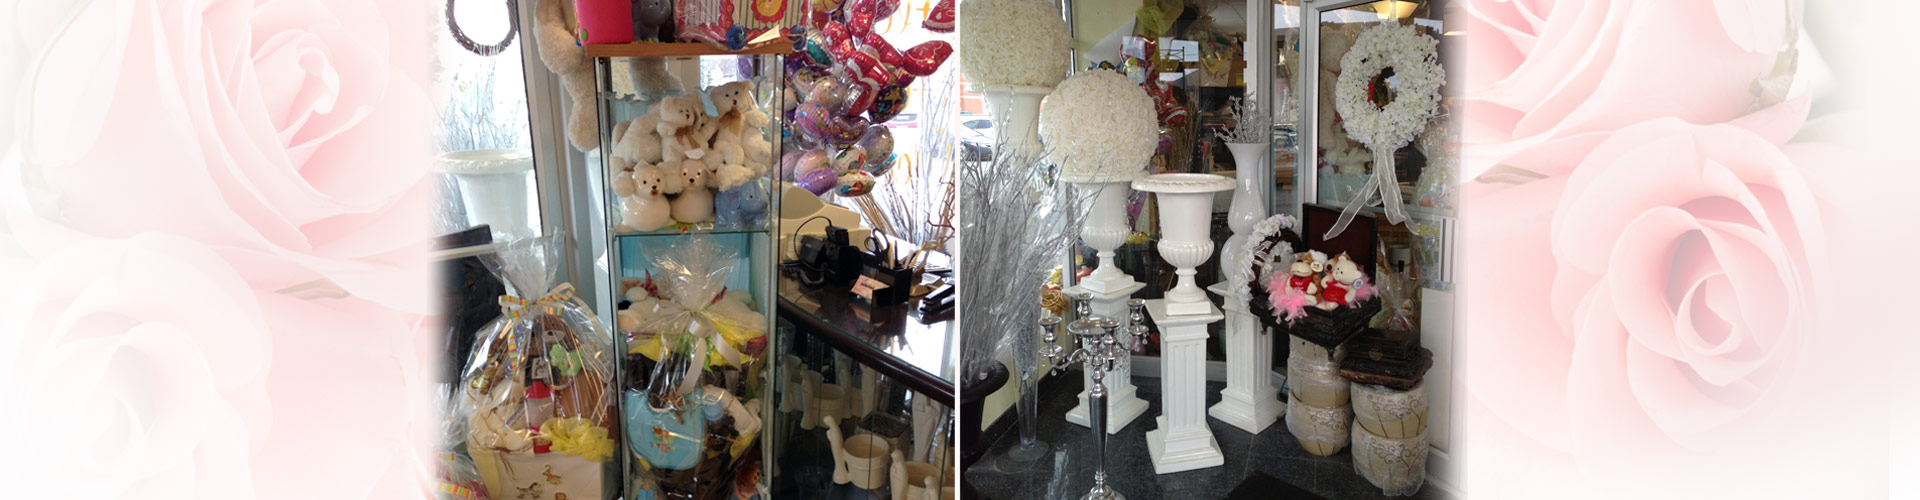 Store interior with gift displays